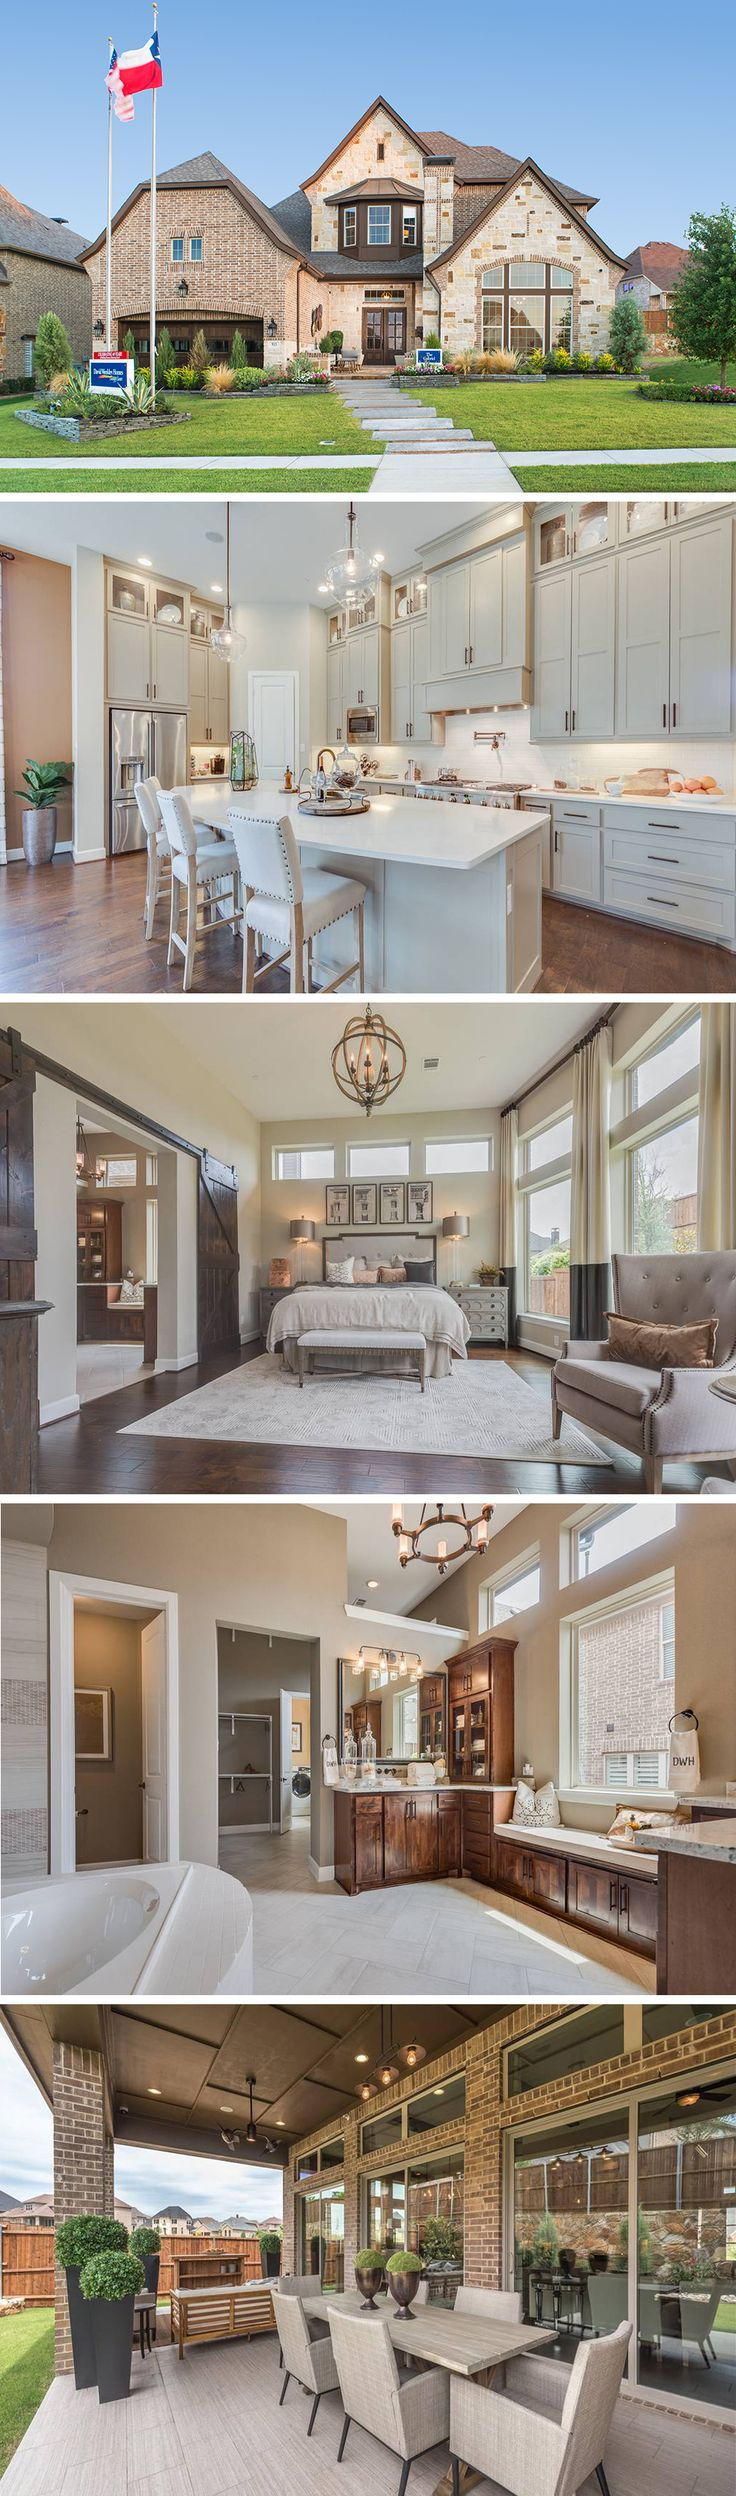 33 best dallas tx homes images on pinterest home custom homes the gabriel by david weekley homes in fairway ranch is a 4 bedroom home that features an open kitchen and family room large wooden ceiling beams and a